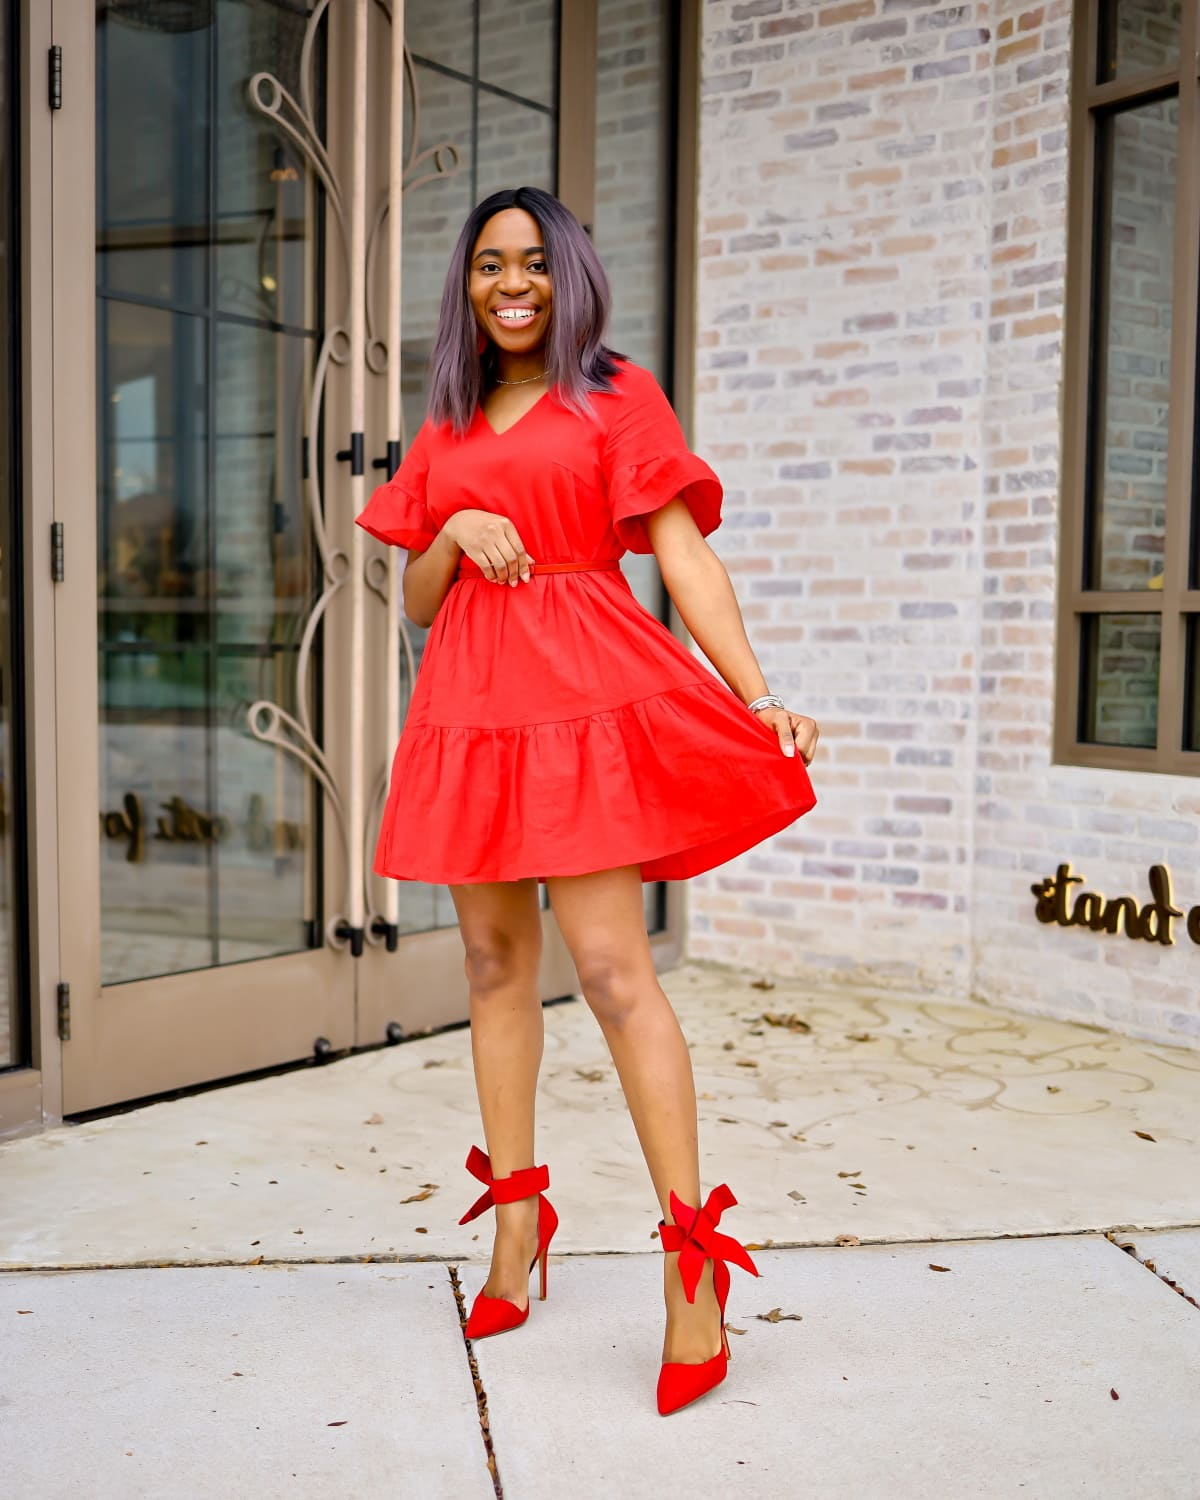 7 Red Dress Outfit Ideas to Steal in 2020 for Different Occasions [VIDEO]